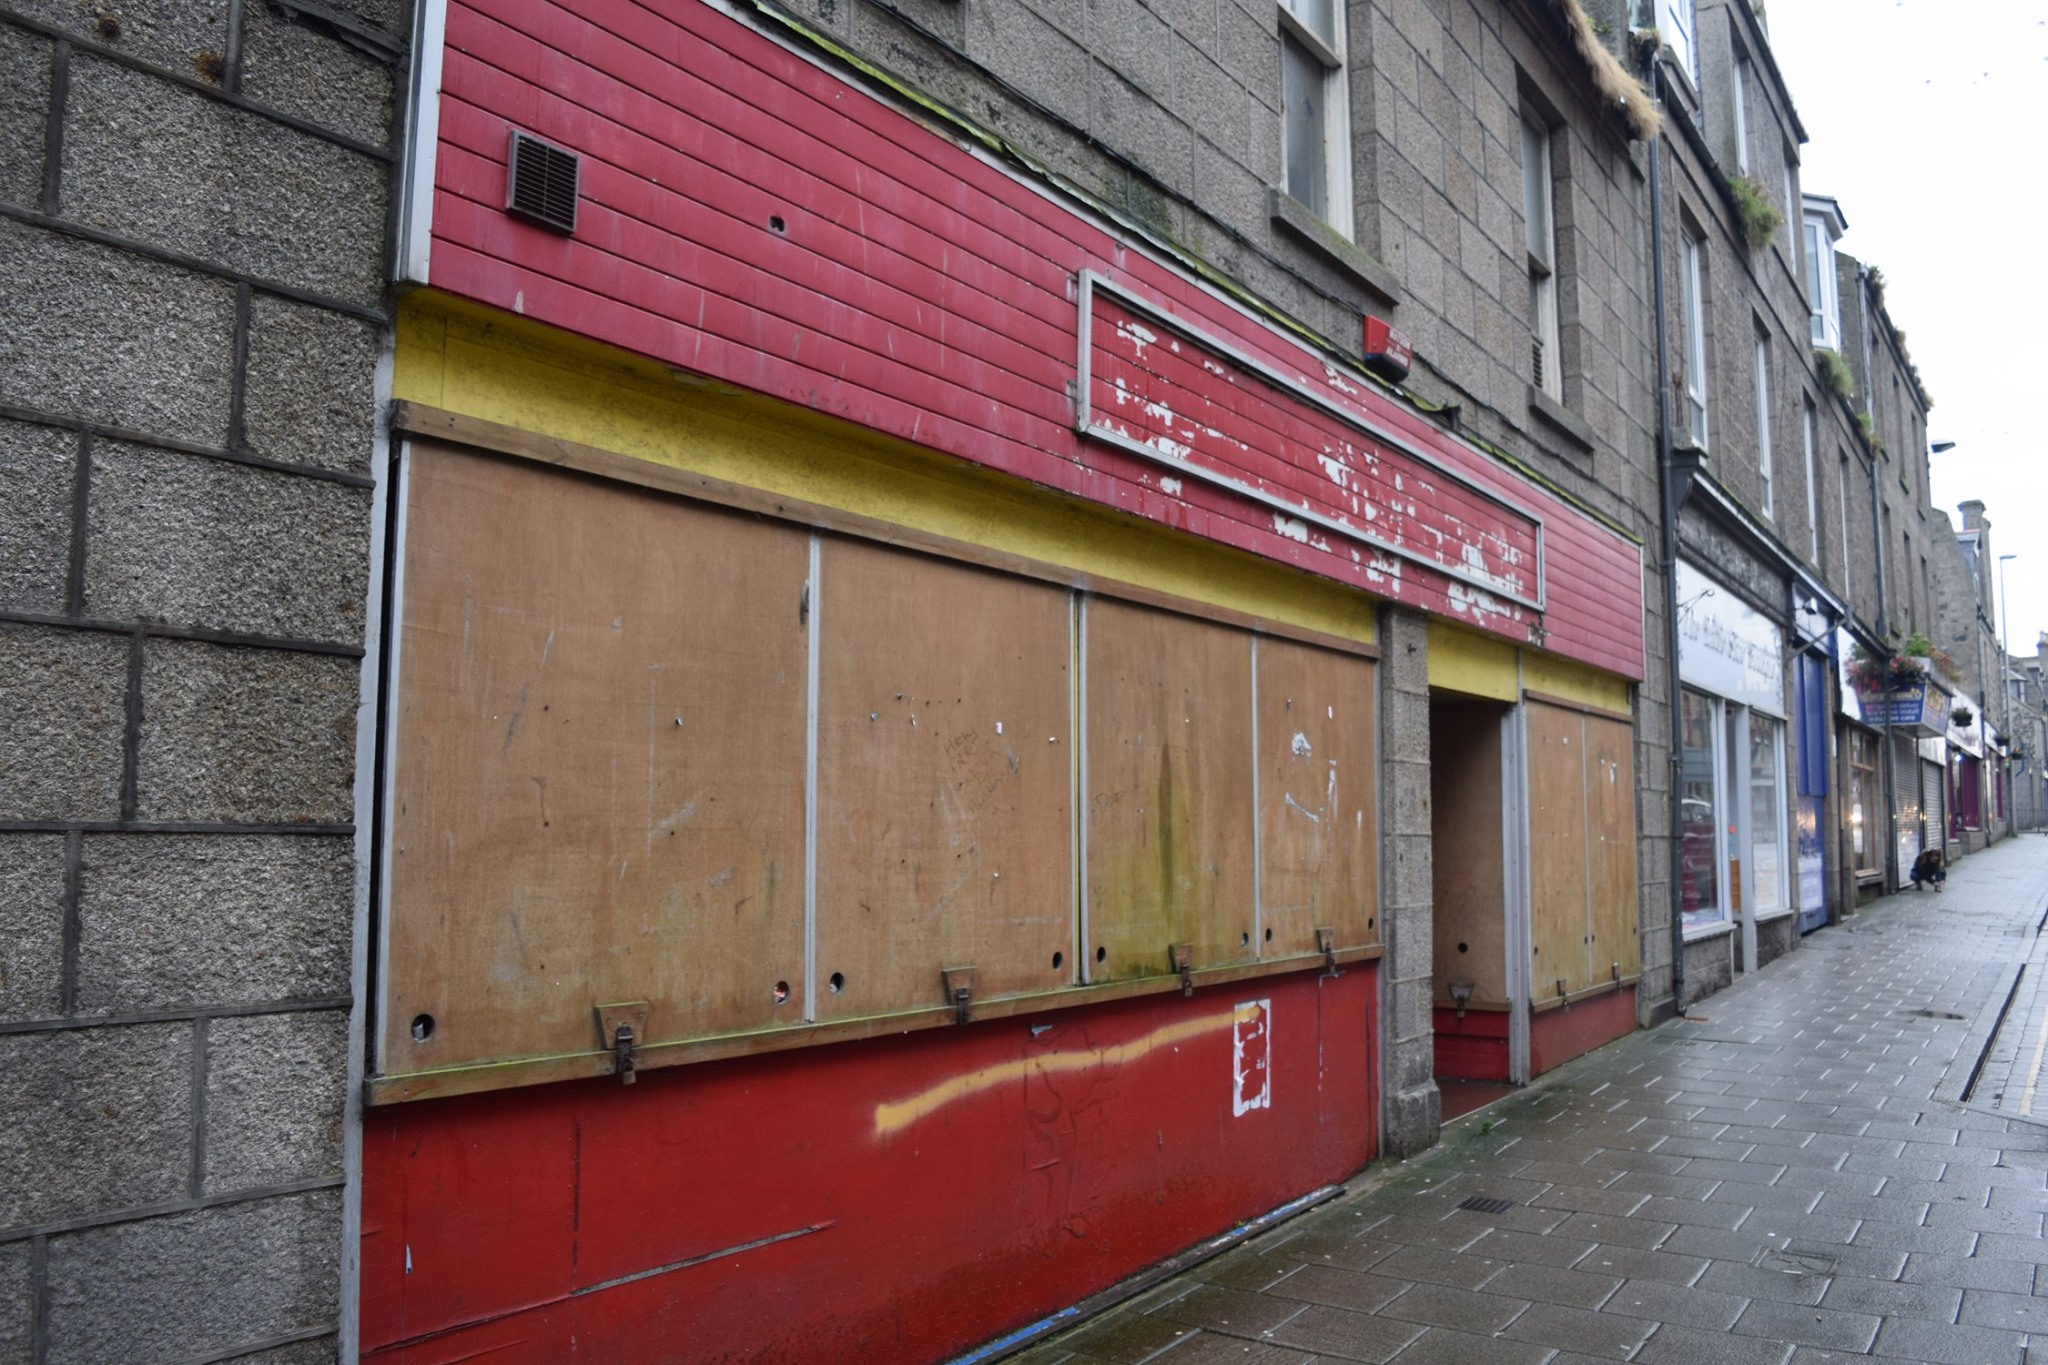 The former High Street toy store could soon be part of Cheers Cafe Bar and Tavern